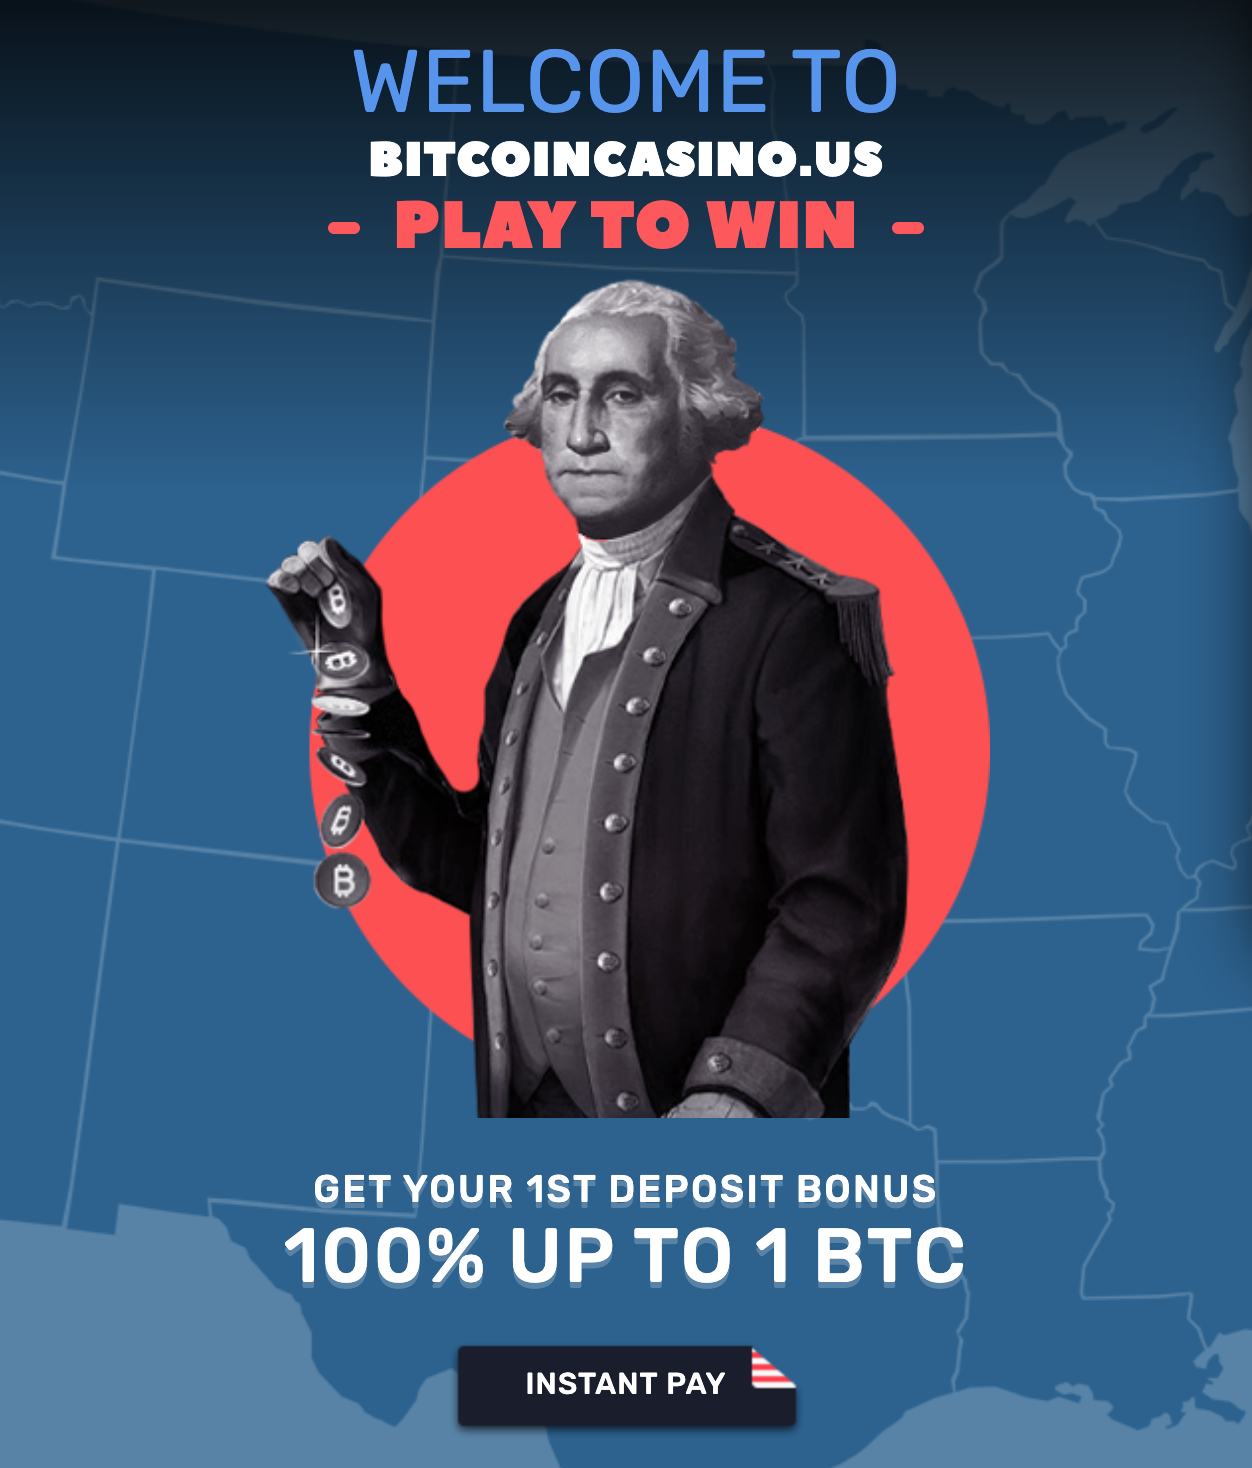 BitcoinCasino.us Home